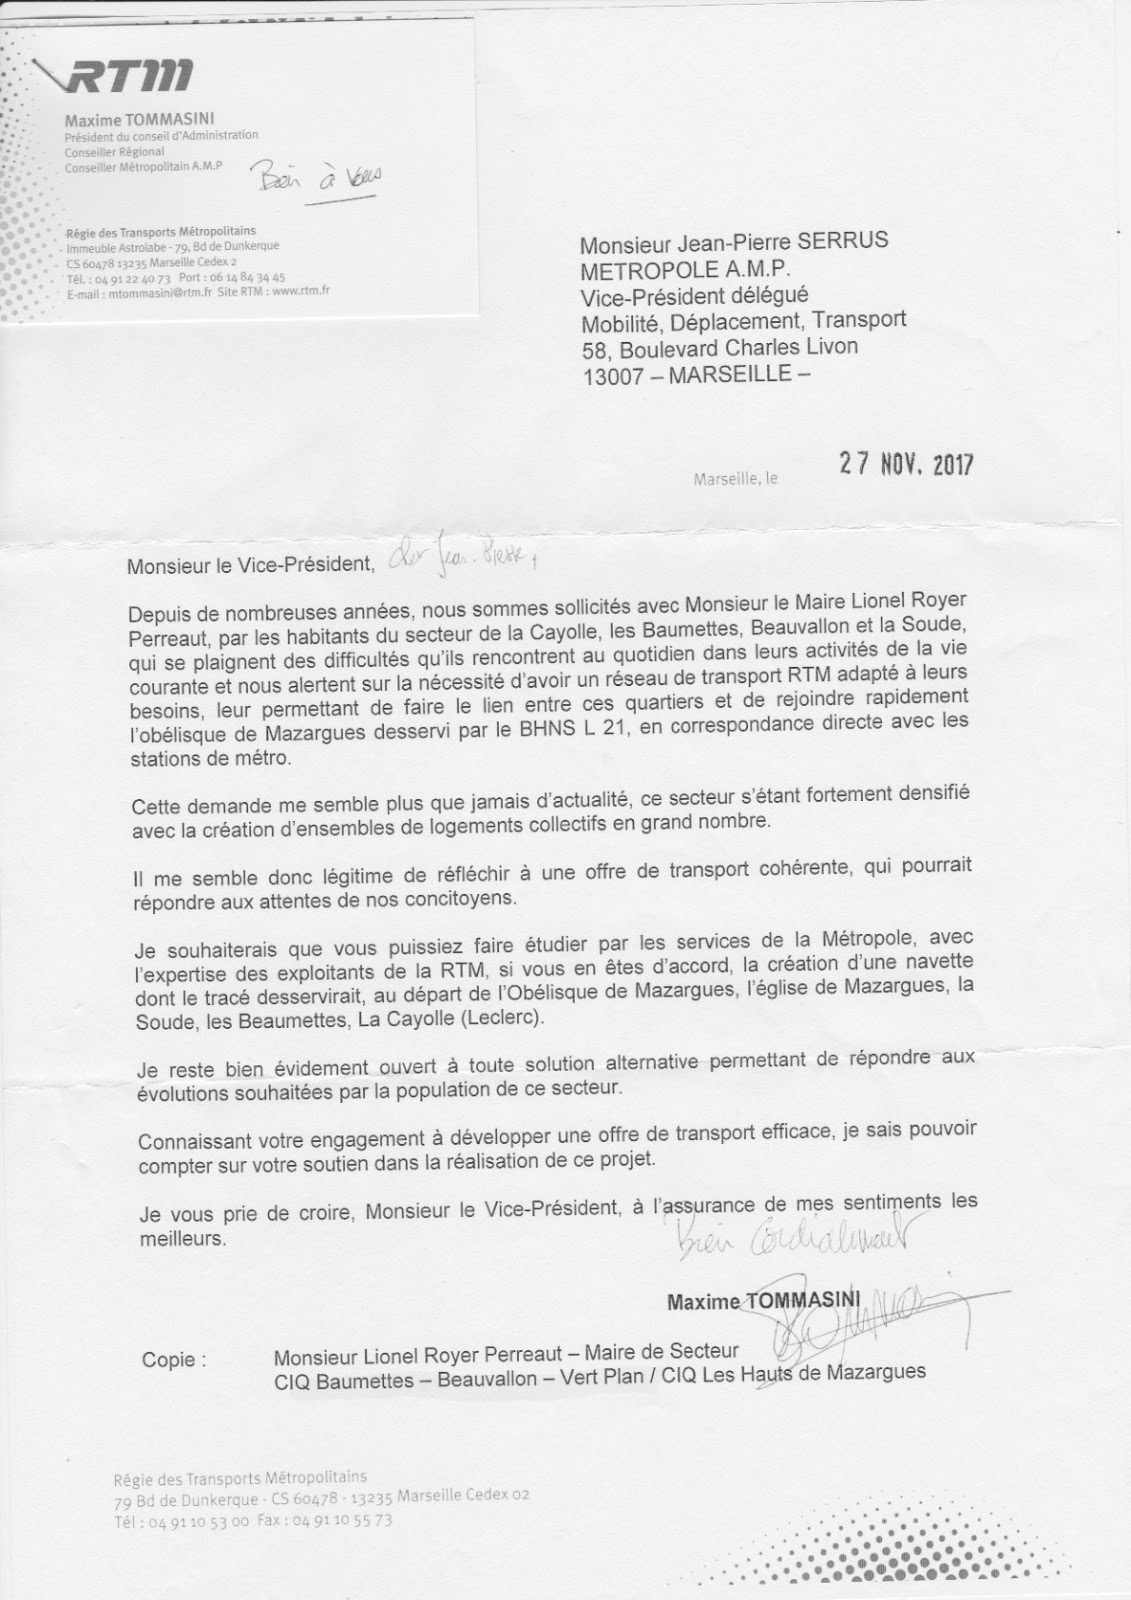 Destructeur De Documents Leclerc Lettre De Monsieur Tommasini Du 27 Novembre 2017 à Monsieur J P